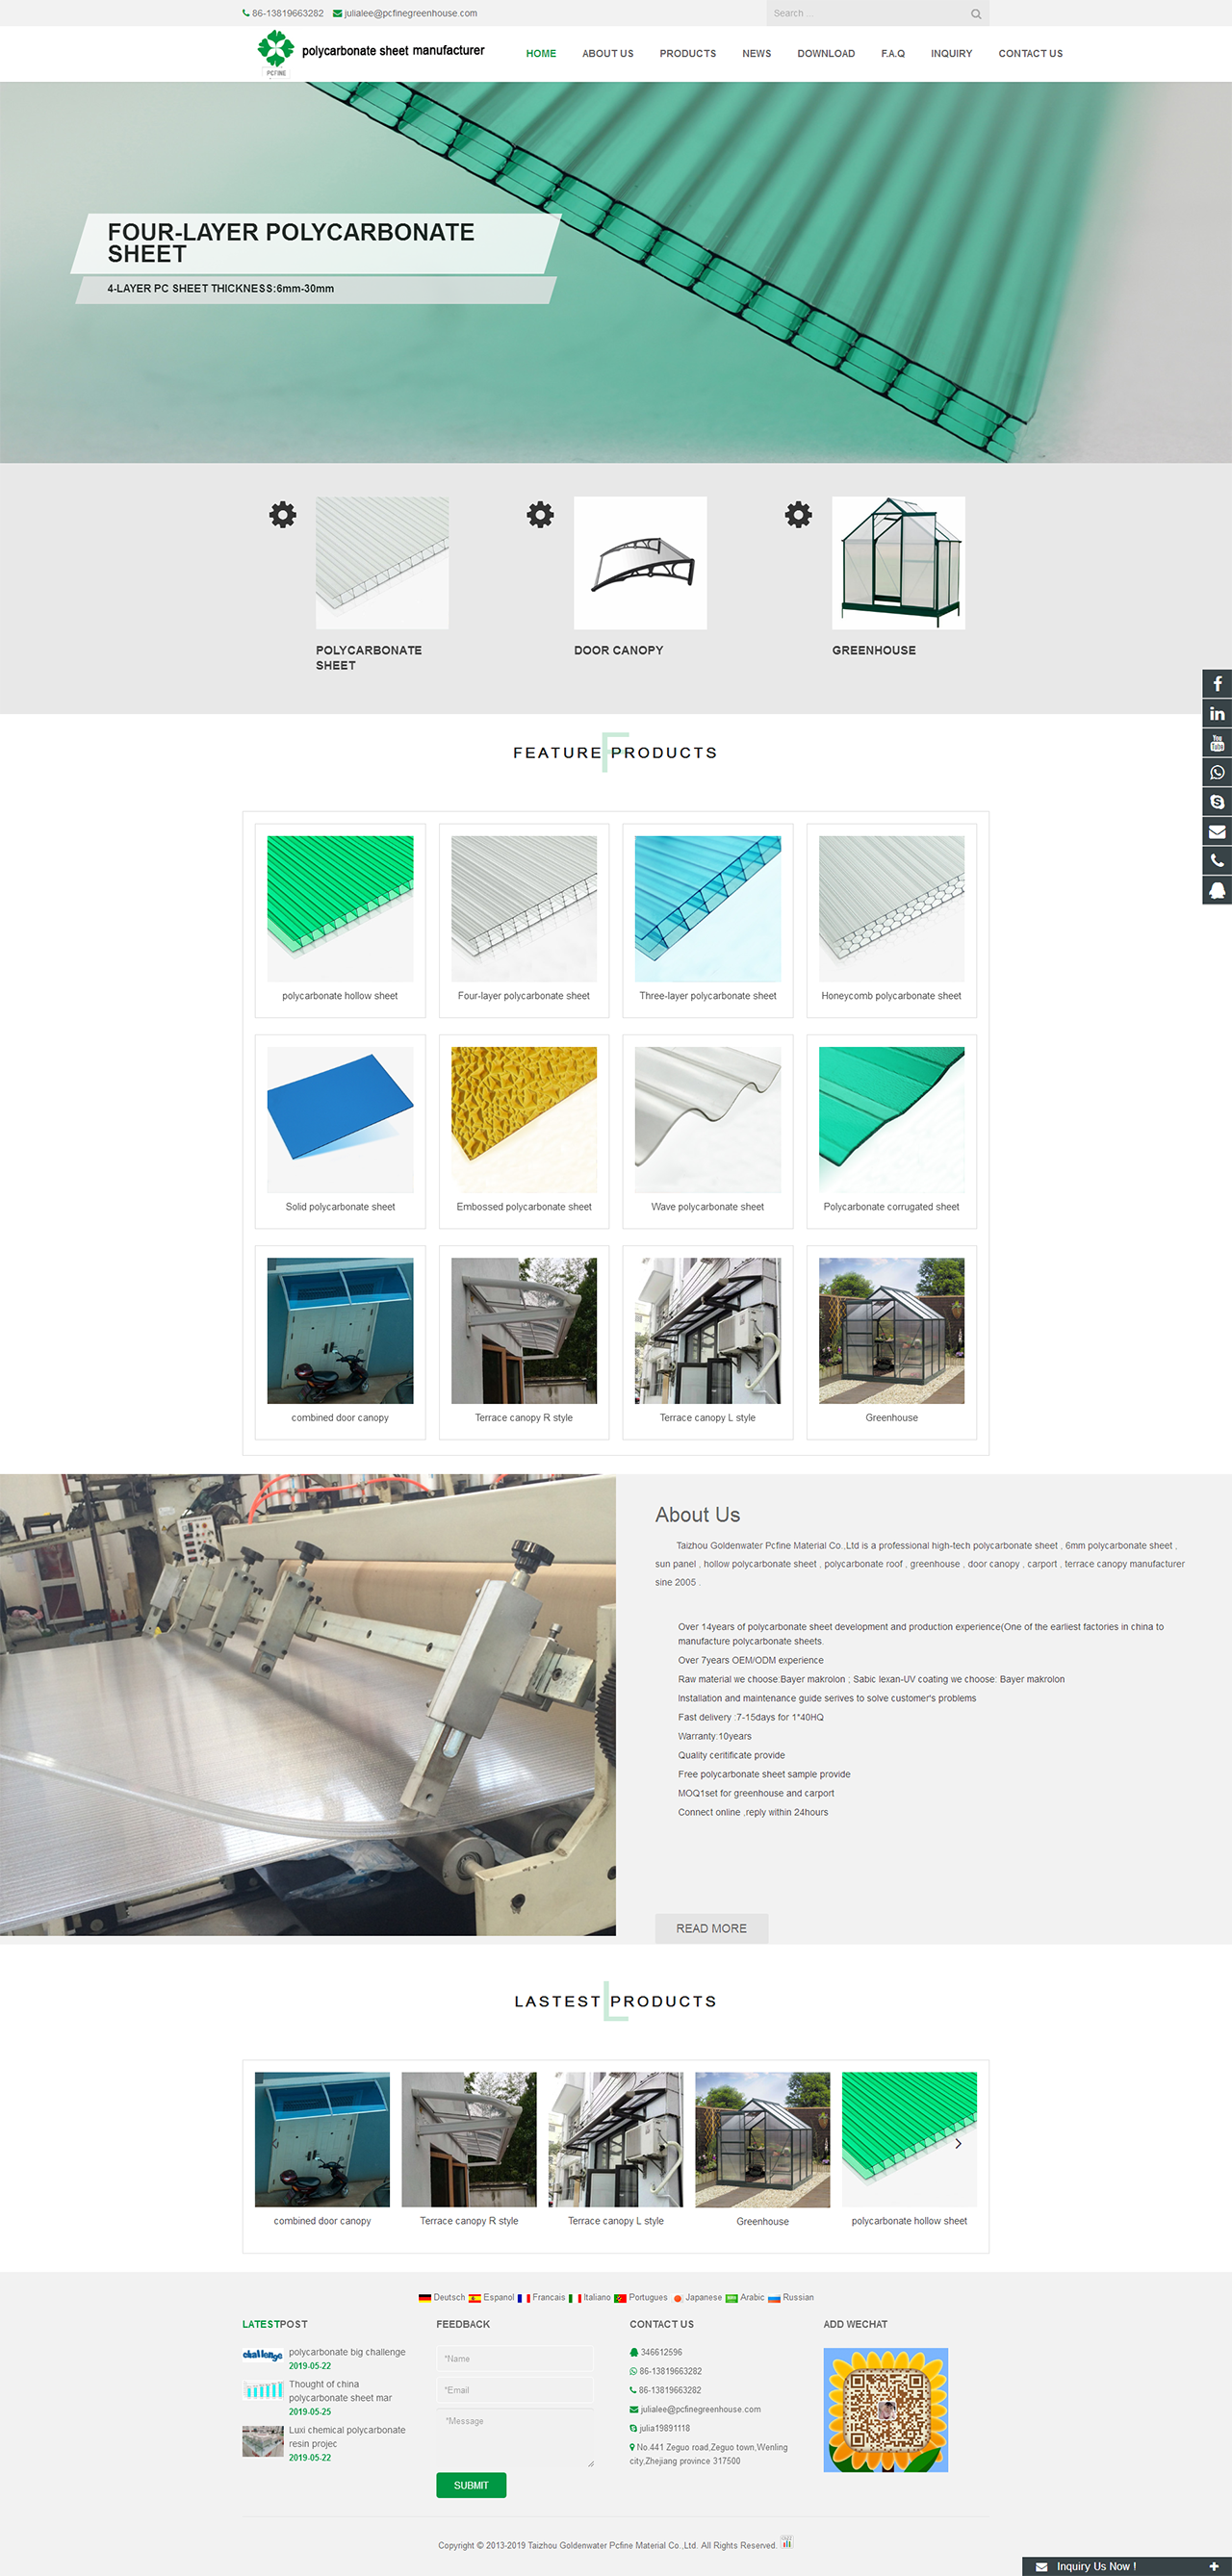 Taizhou Goldenwater Pcfine Material Co.,Ltd. - polycarbonate sheet , greenhouse , door canopy manufacturer